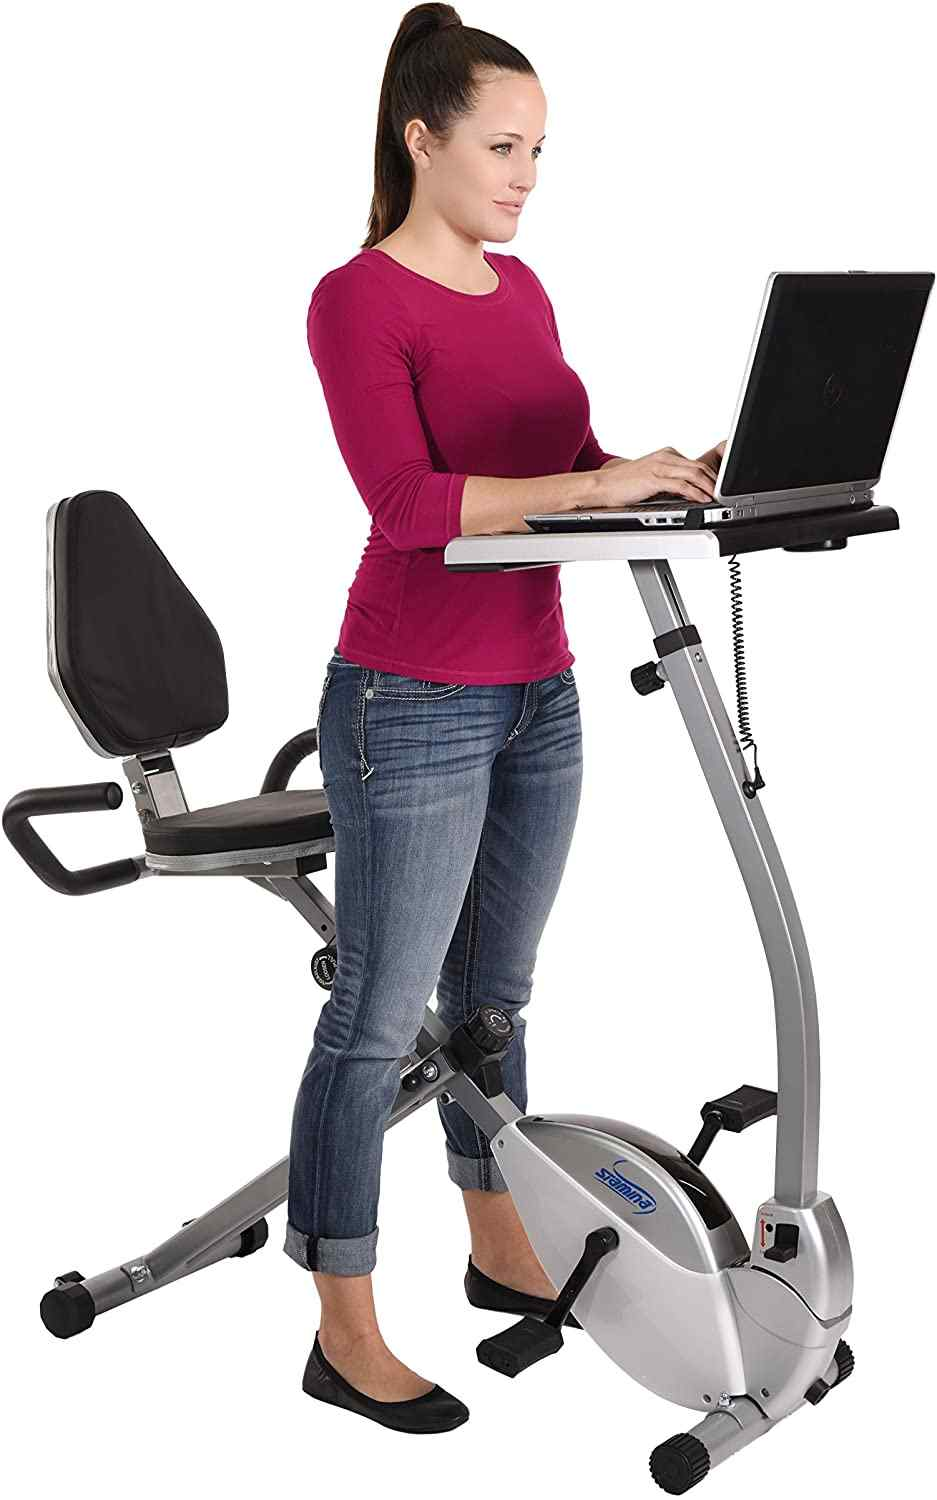 Stamina 2 in 1 recumbent exercise bike and workstation